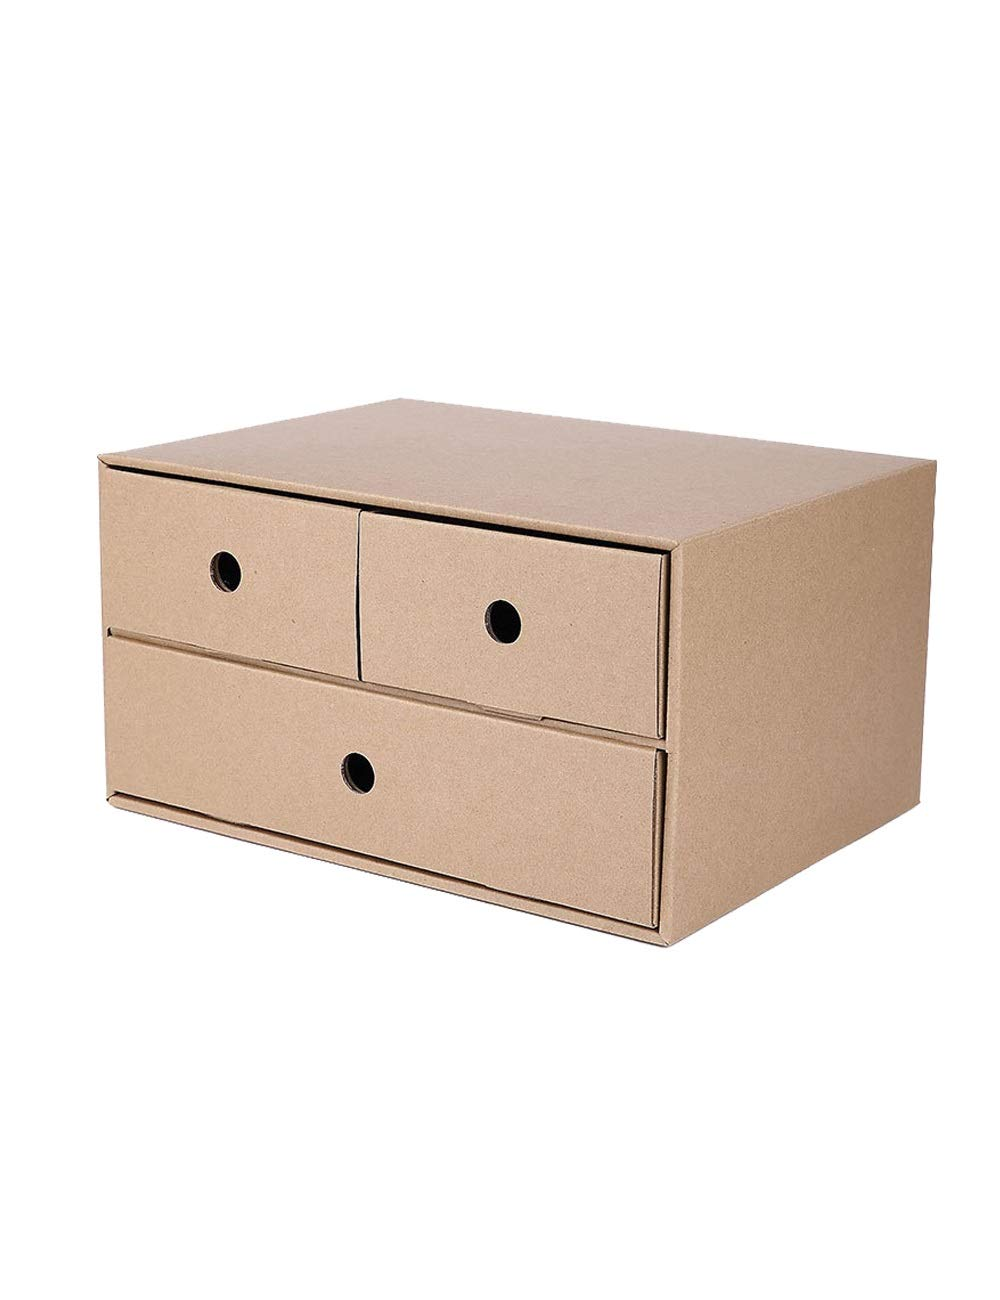 File Cabinets Drawer Showcase Multi-Function Cabinet Desktop Archive Storage Manager 3 Drawers Primary Color Office File Storage Cabinet Storage Box